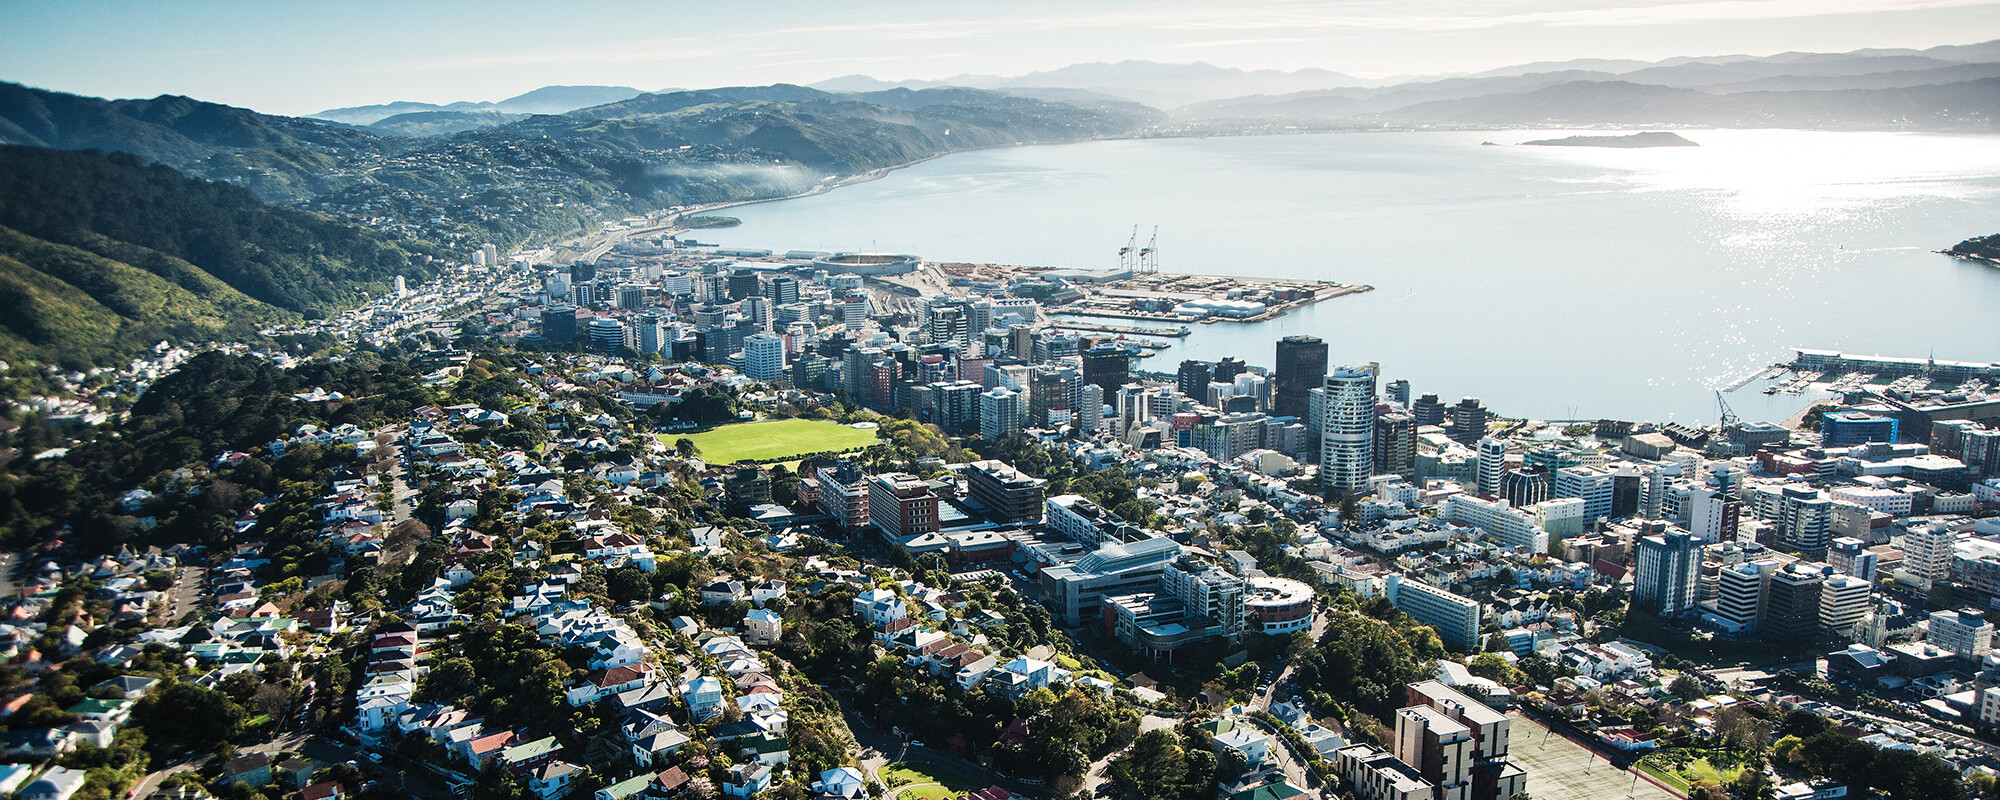 Aerial image of Wellington looking out over the water.